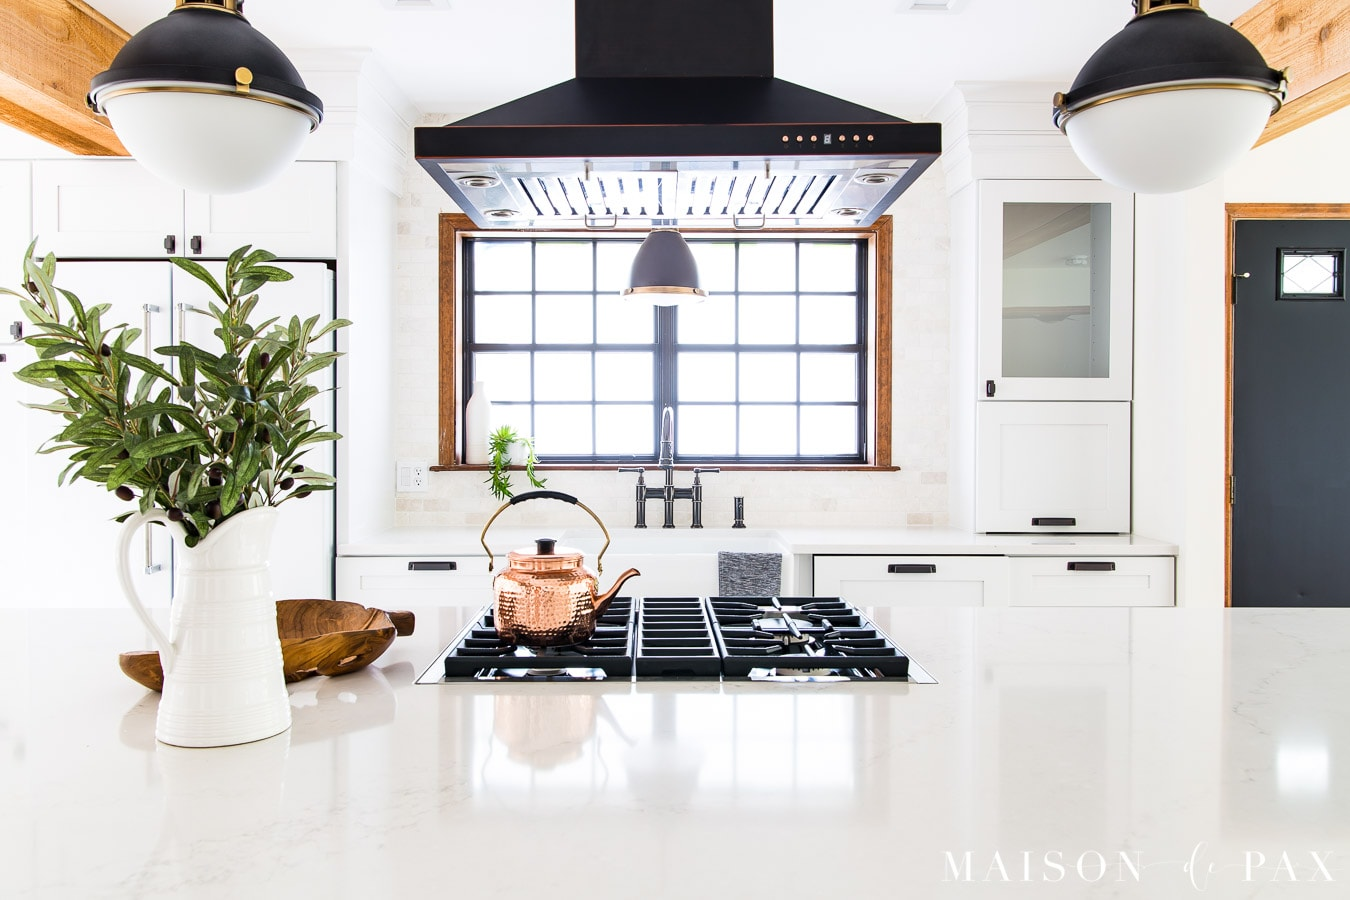 white marble-look quartz countertops on large kitchen island | Maison de Pax